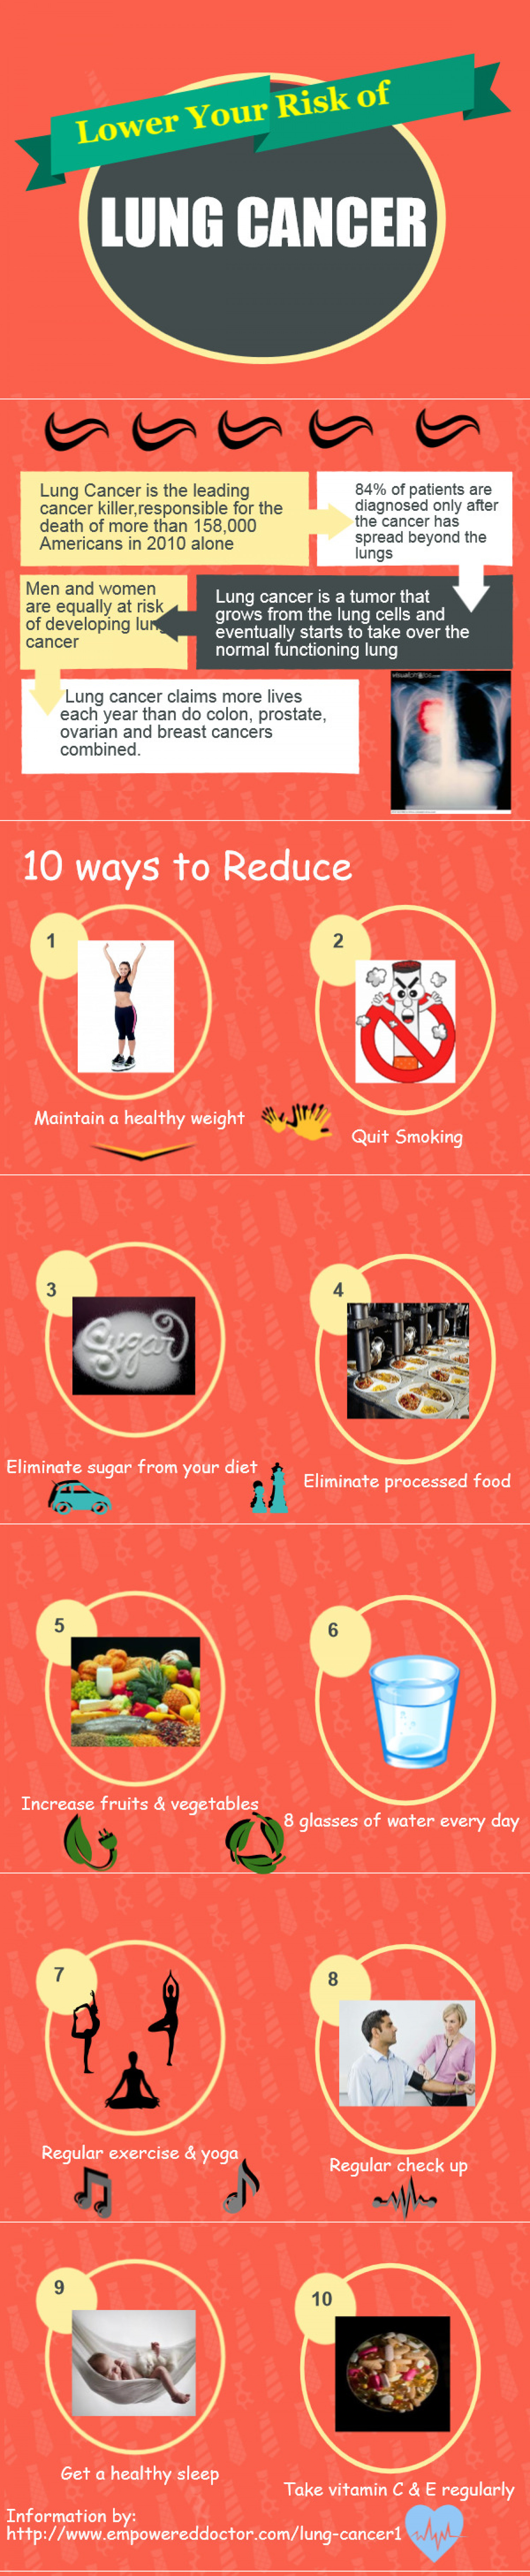 Lower Your Risk of Lung Cancer Infographic